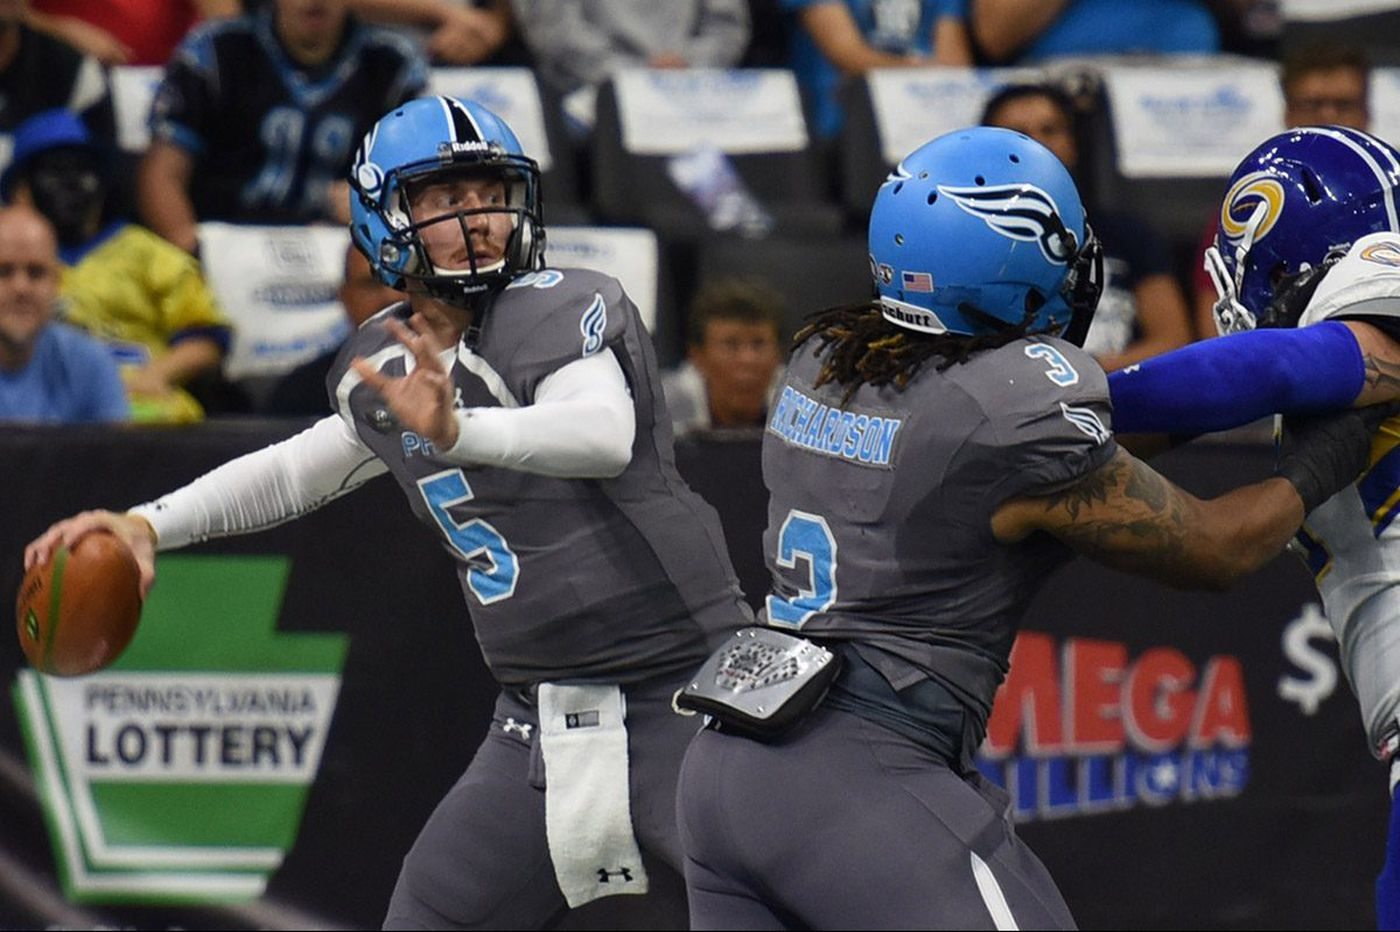 Soul's first-round playoff opponent determined